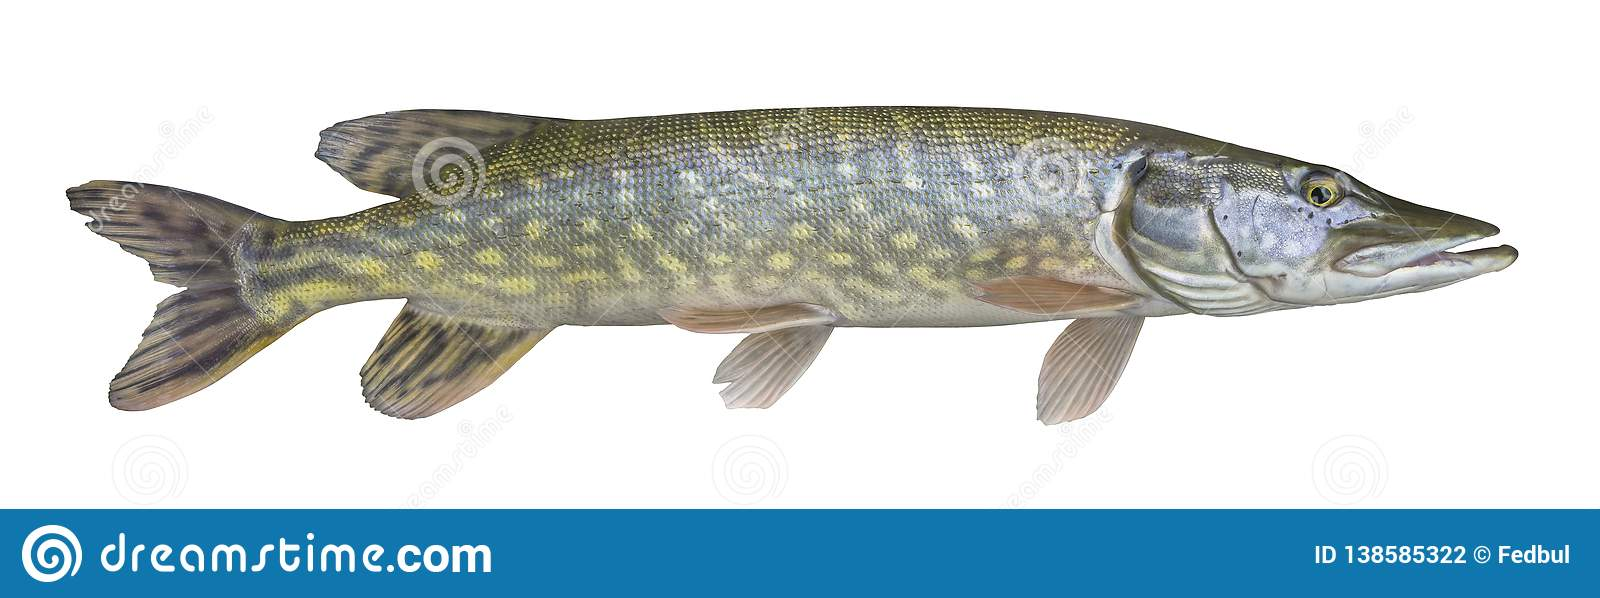 Pike fish trophy isolated on white background